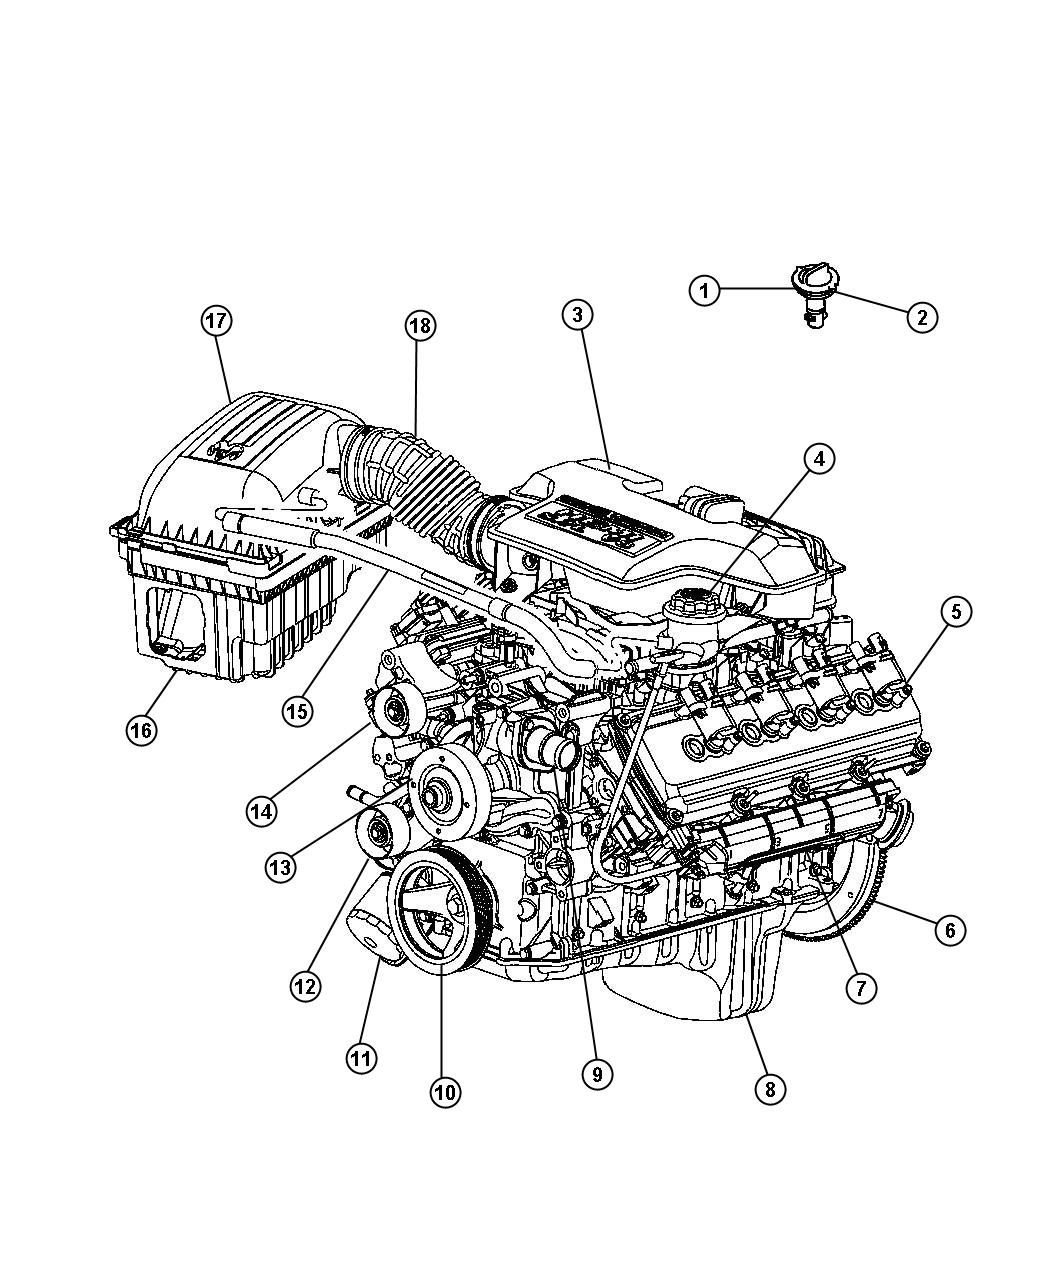 hight resolution of dodge ram 2500 engine diagram get free image about 2007 chevy cobalt fuse box diagram 2007